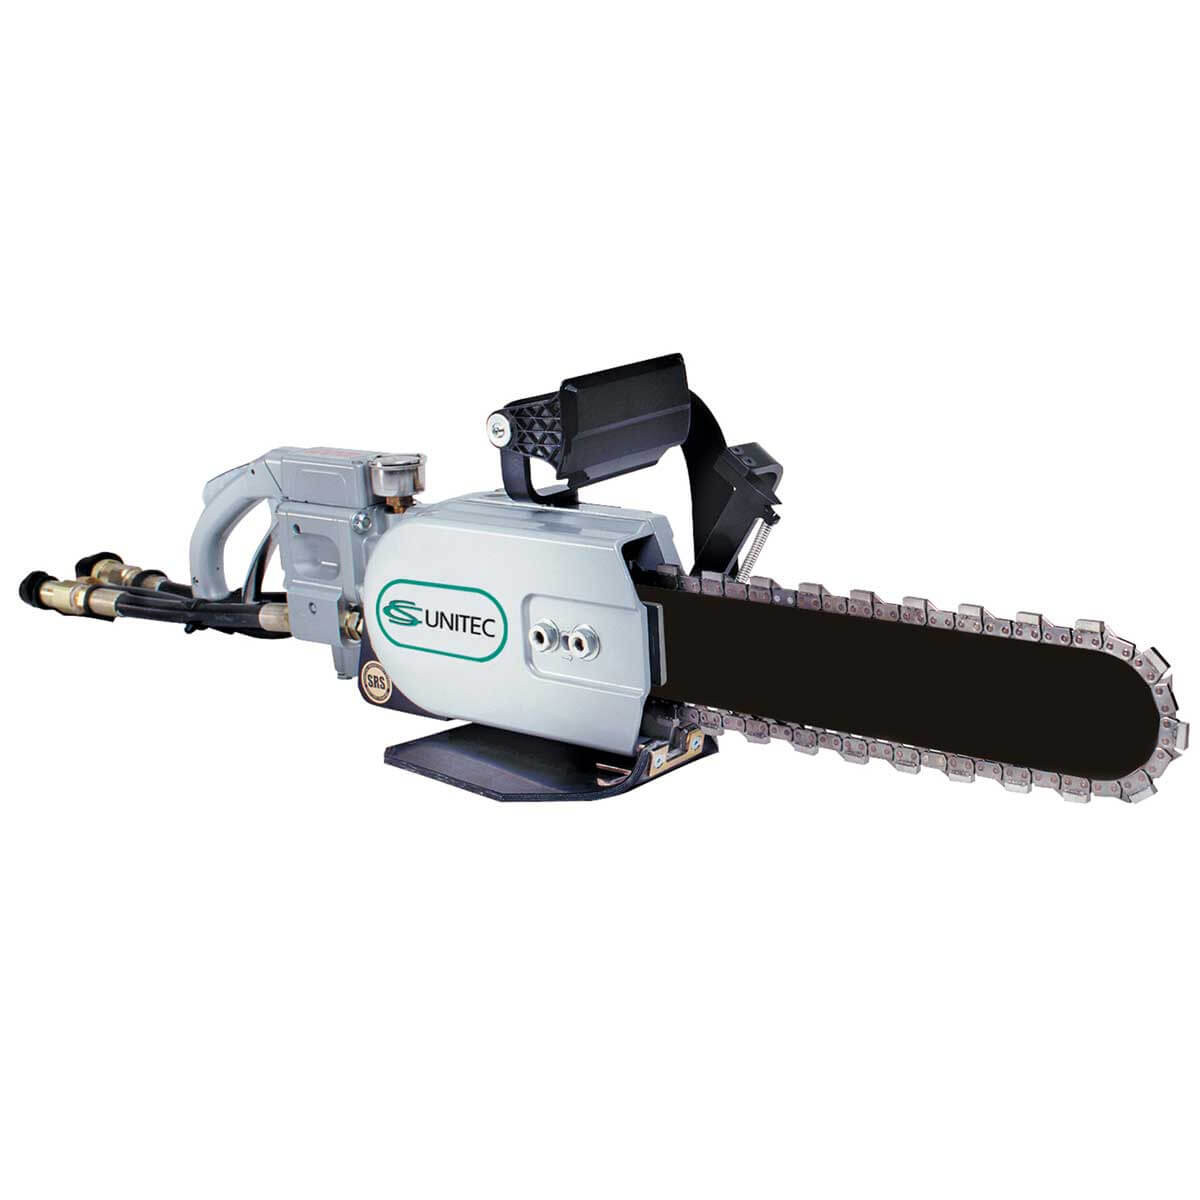 CS Unitec Diamond Chain for saw